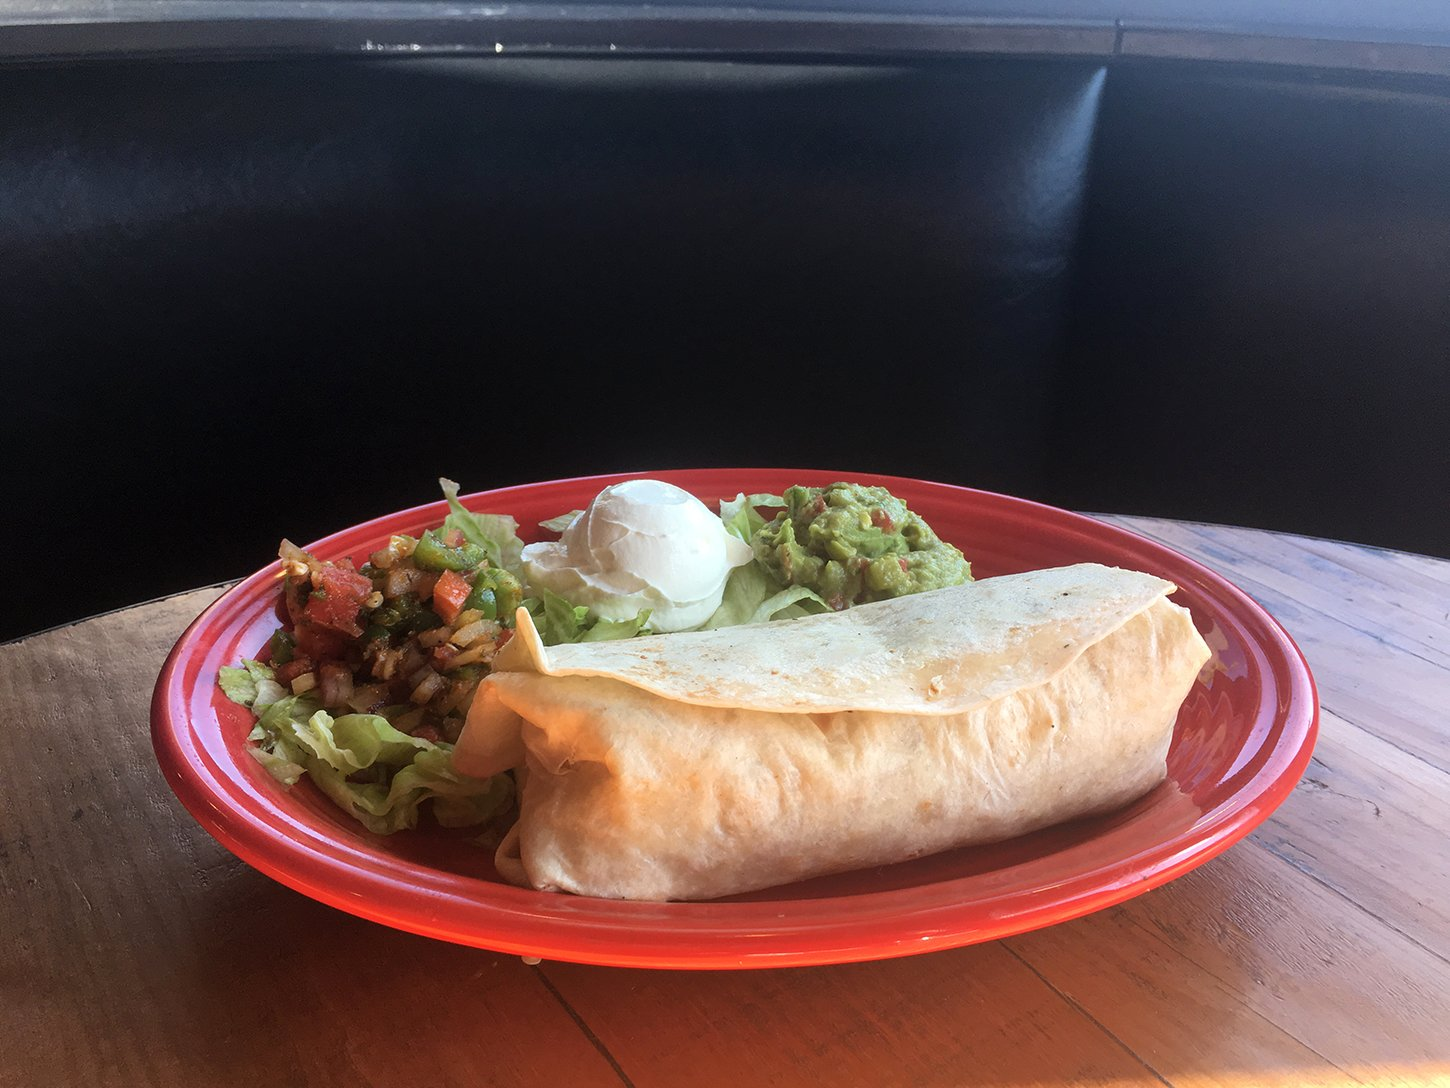 The steak in the burrito was seared to perfection and stuffed into a large, soft burrito along with fresh lettuce, tomatoes, cheese, sour cream and ultra-fresh guacamole.